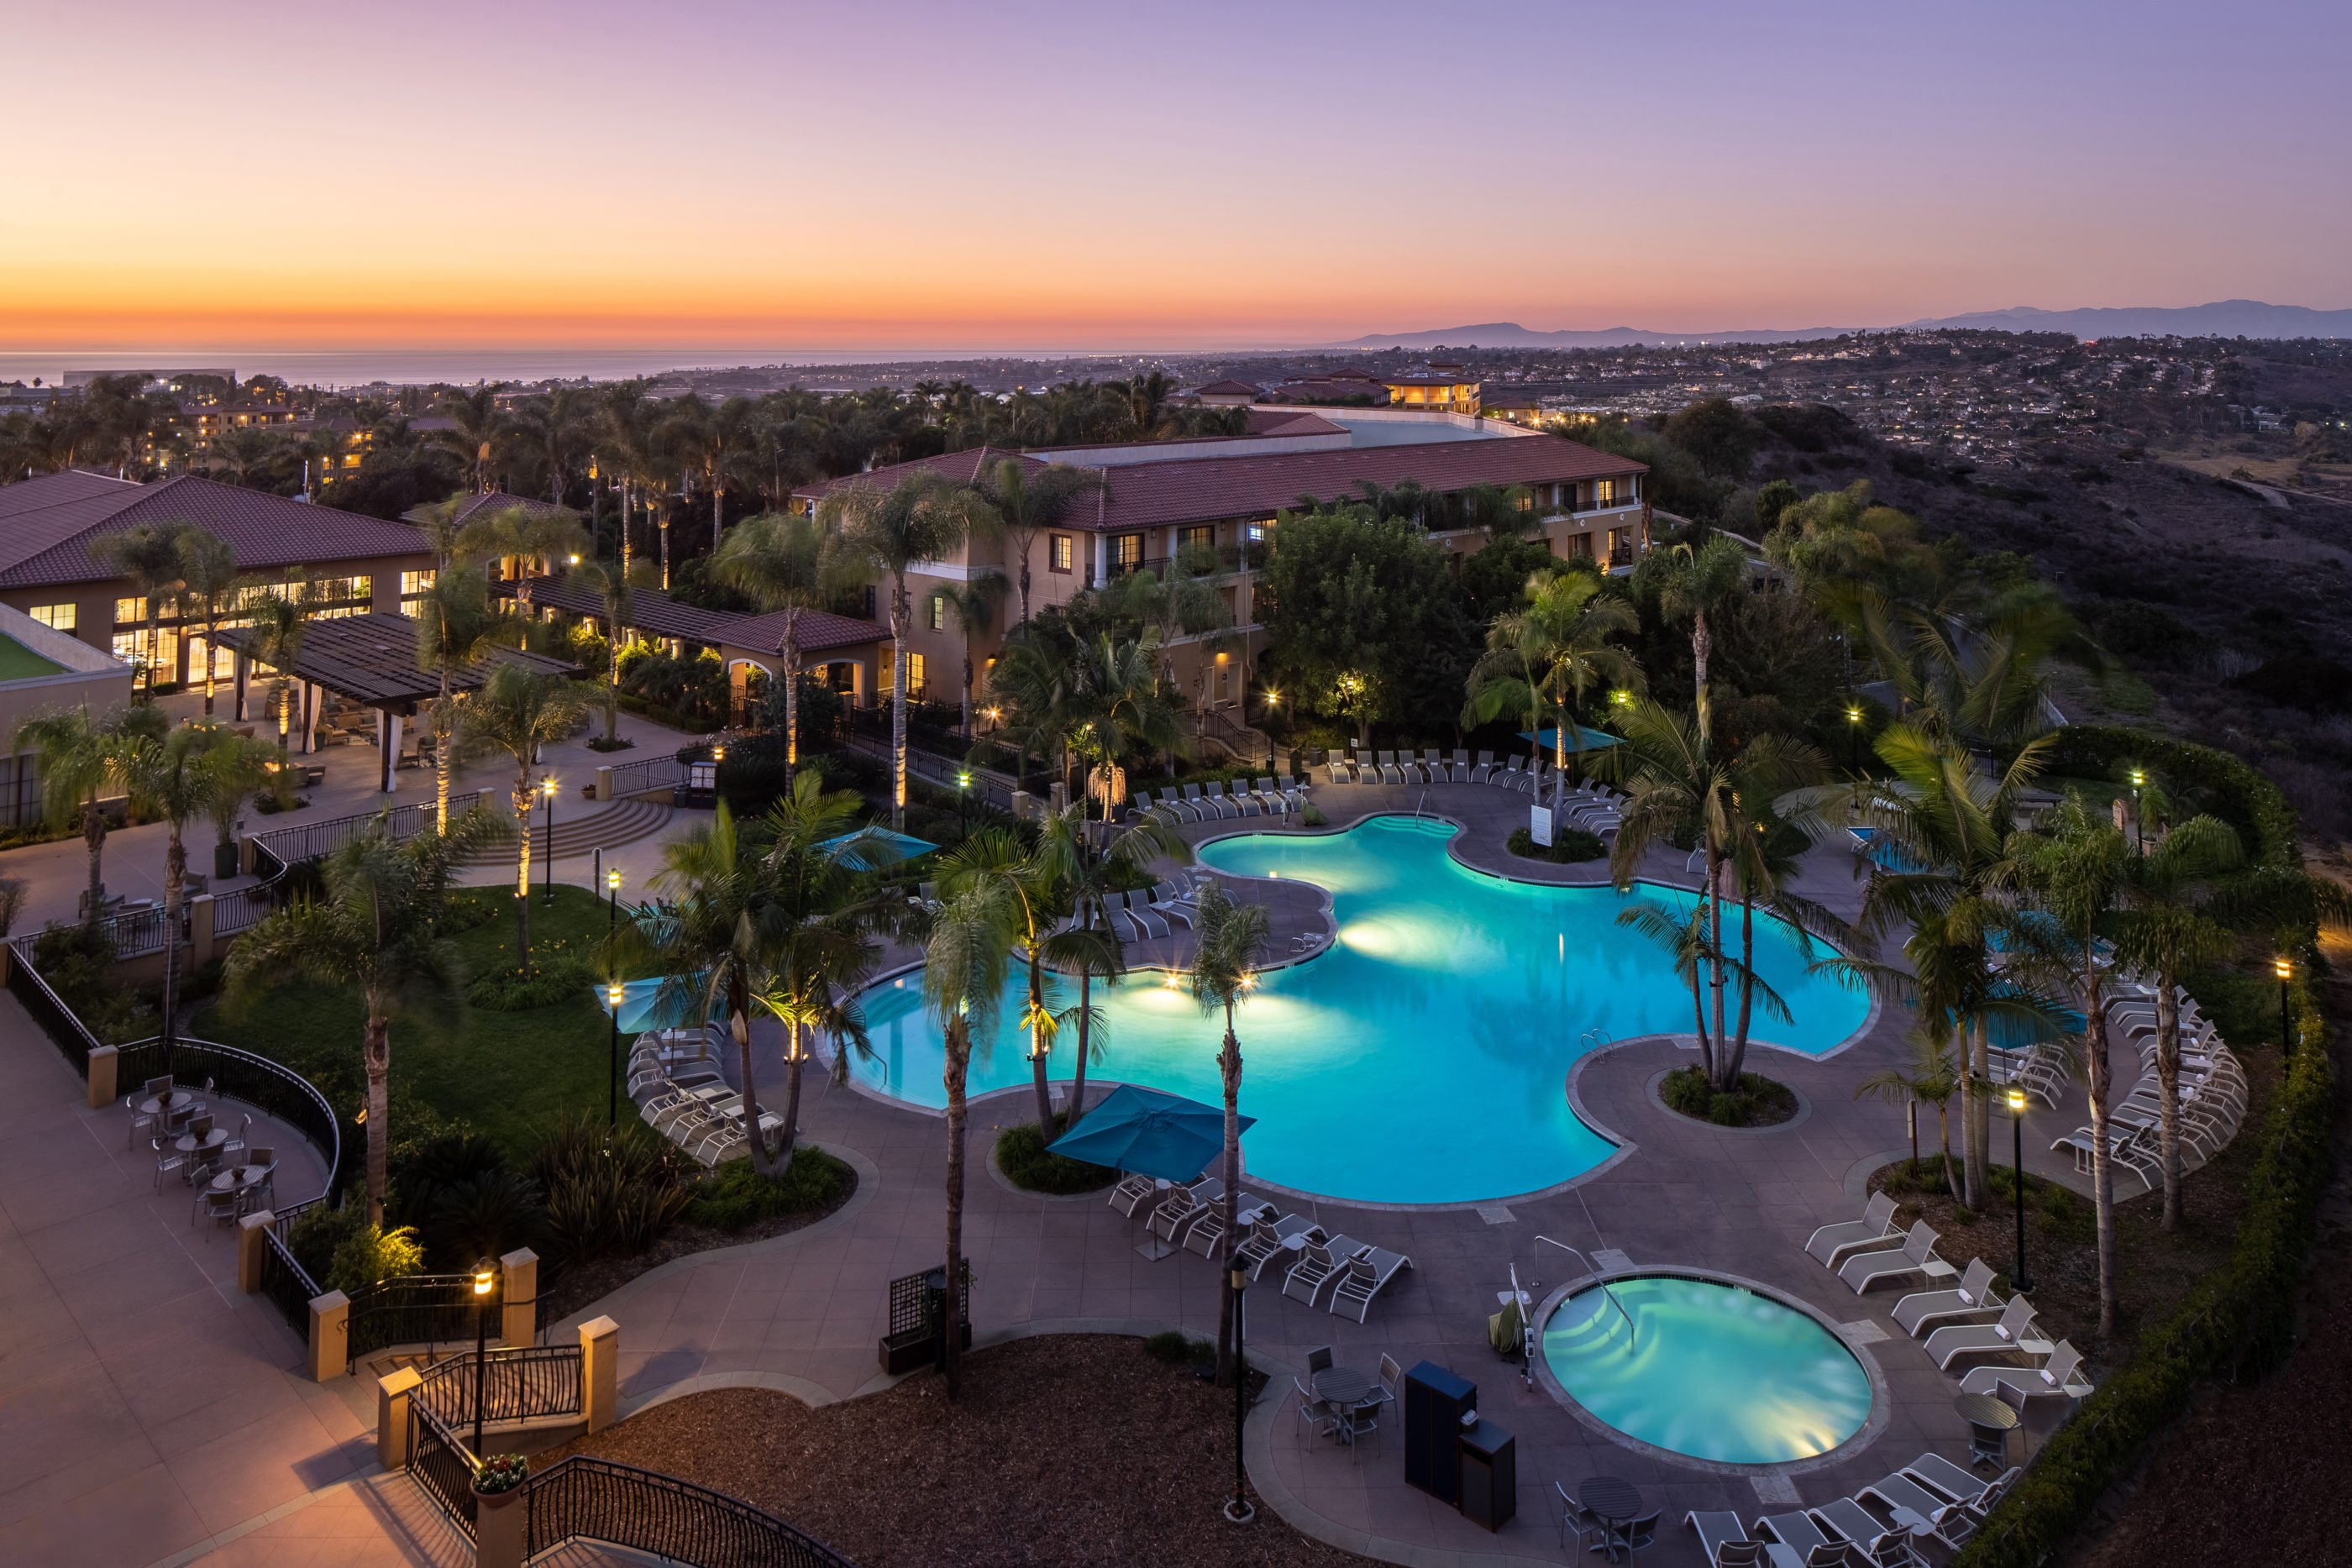 Aerial view to the ocean of Westin Carlsbad Resort & Spa palm tree lined pool.